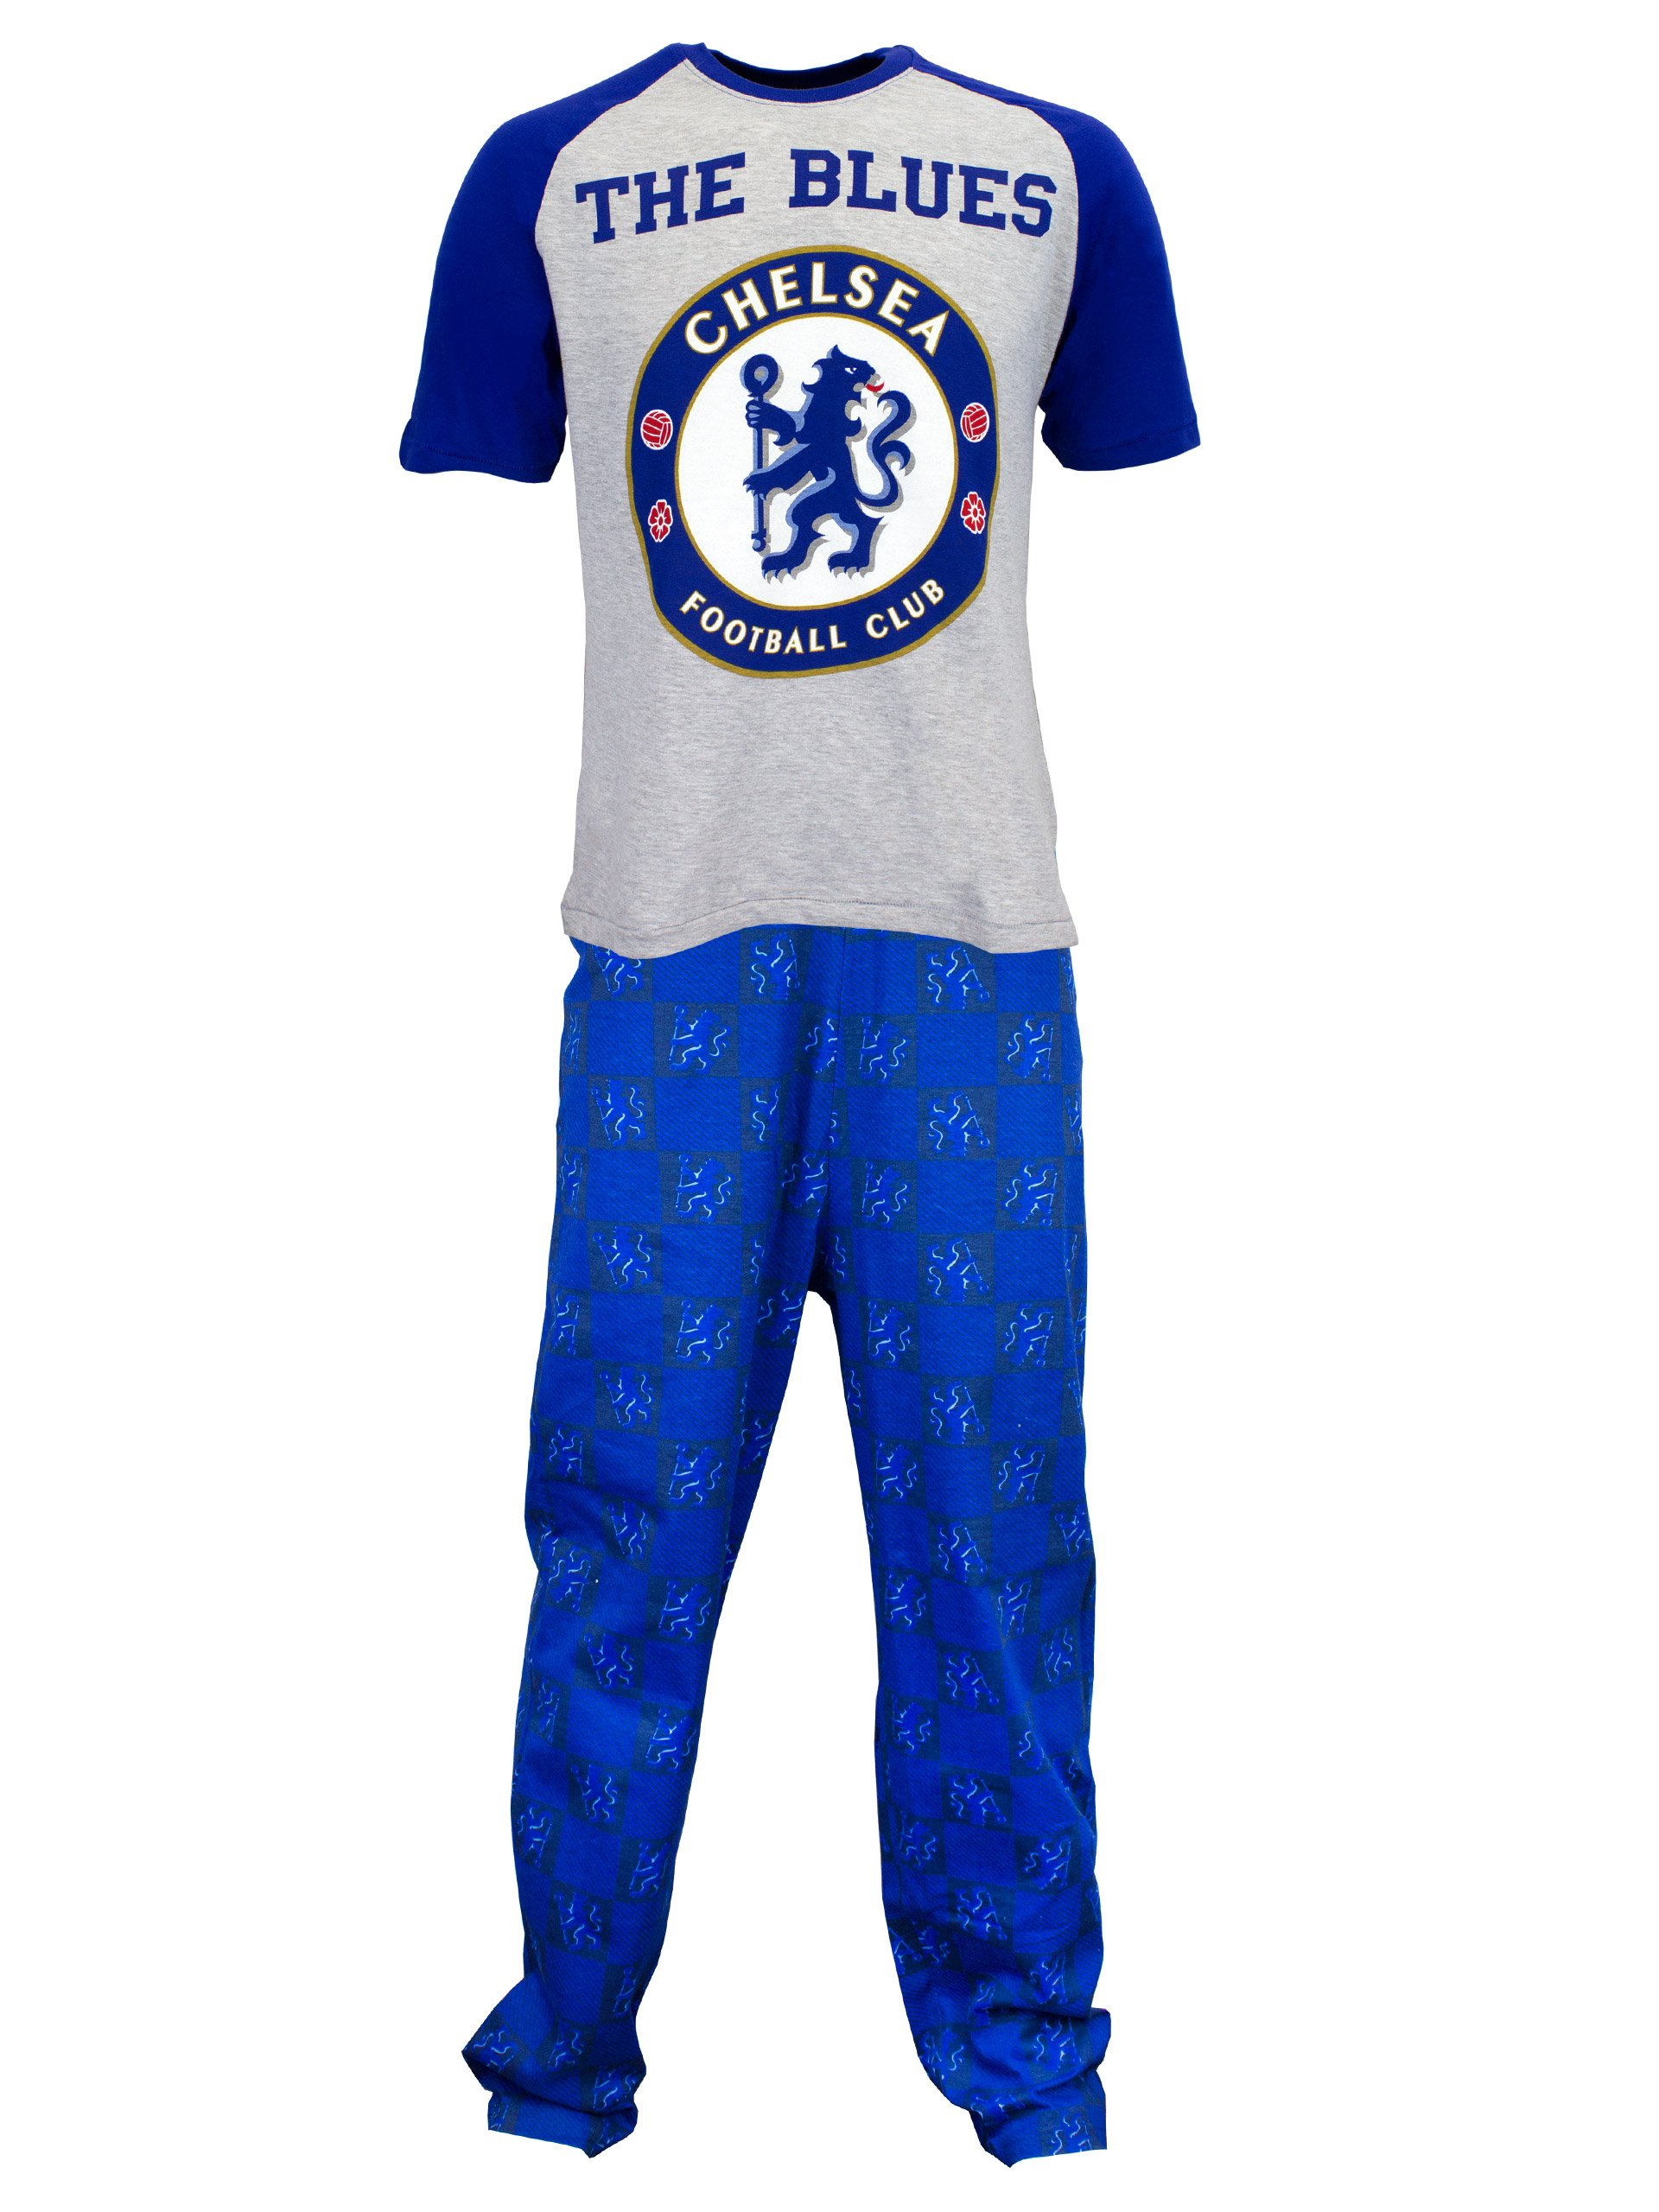 Chelsea Football Club Mens' Chelsea Pajamas Size X-Large